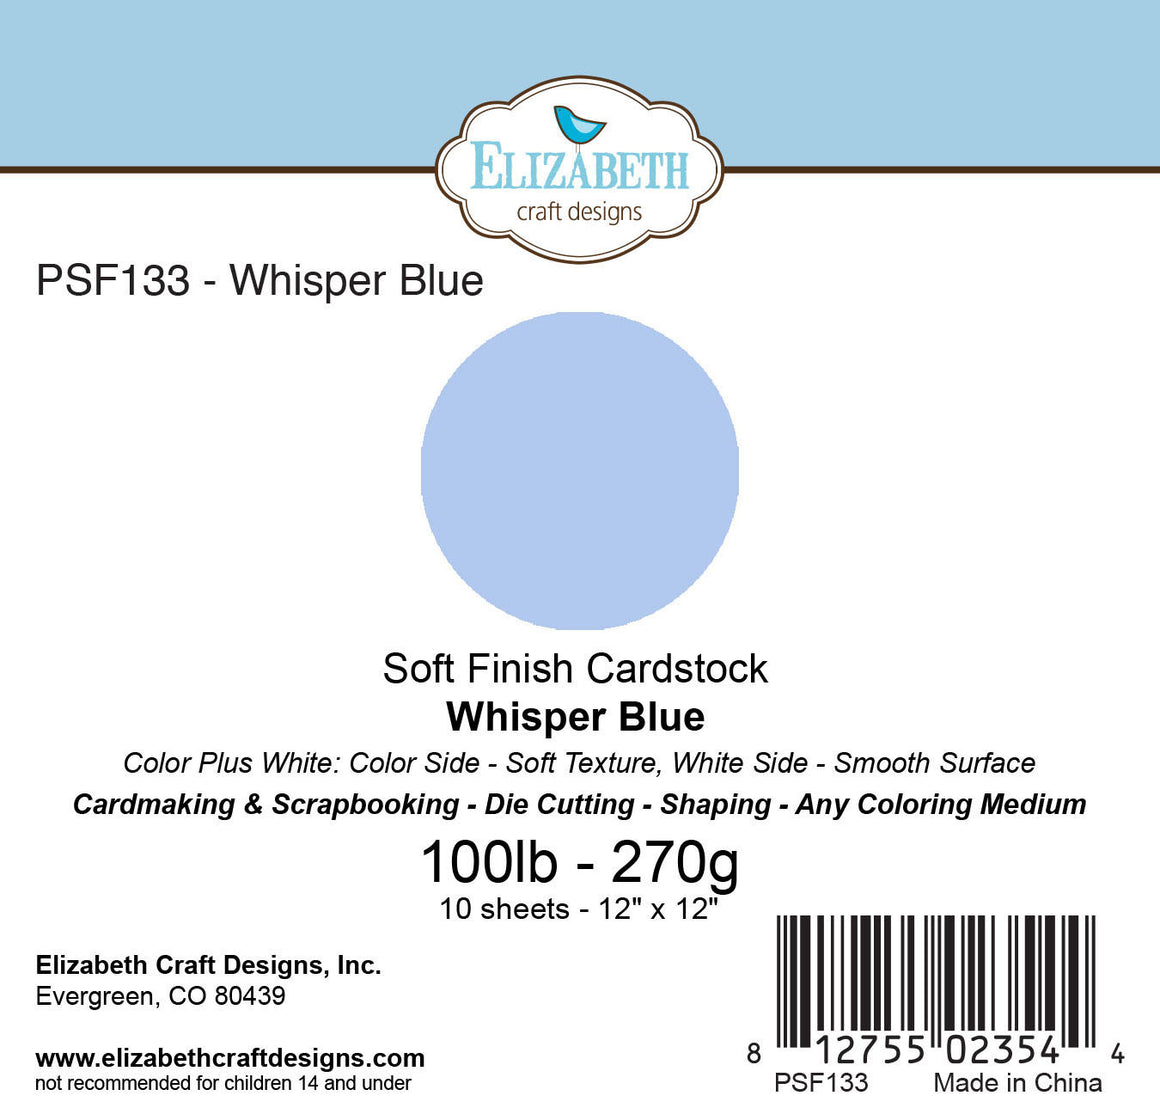 Soft Finish Cardstock, Whisper Blue